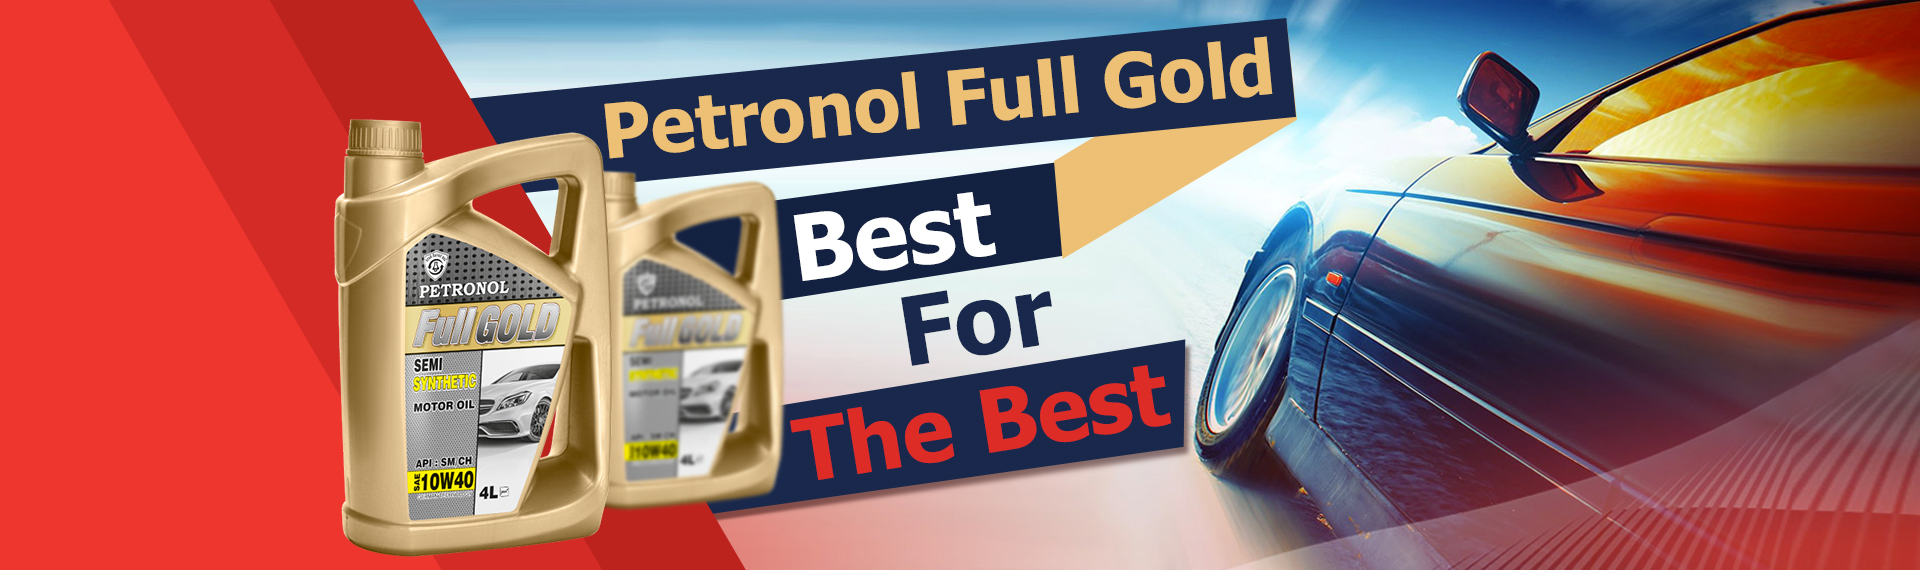 petronol full gold